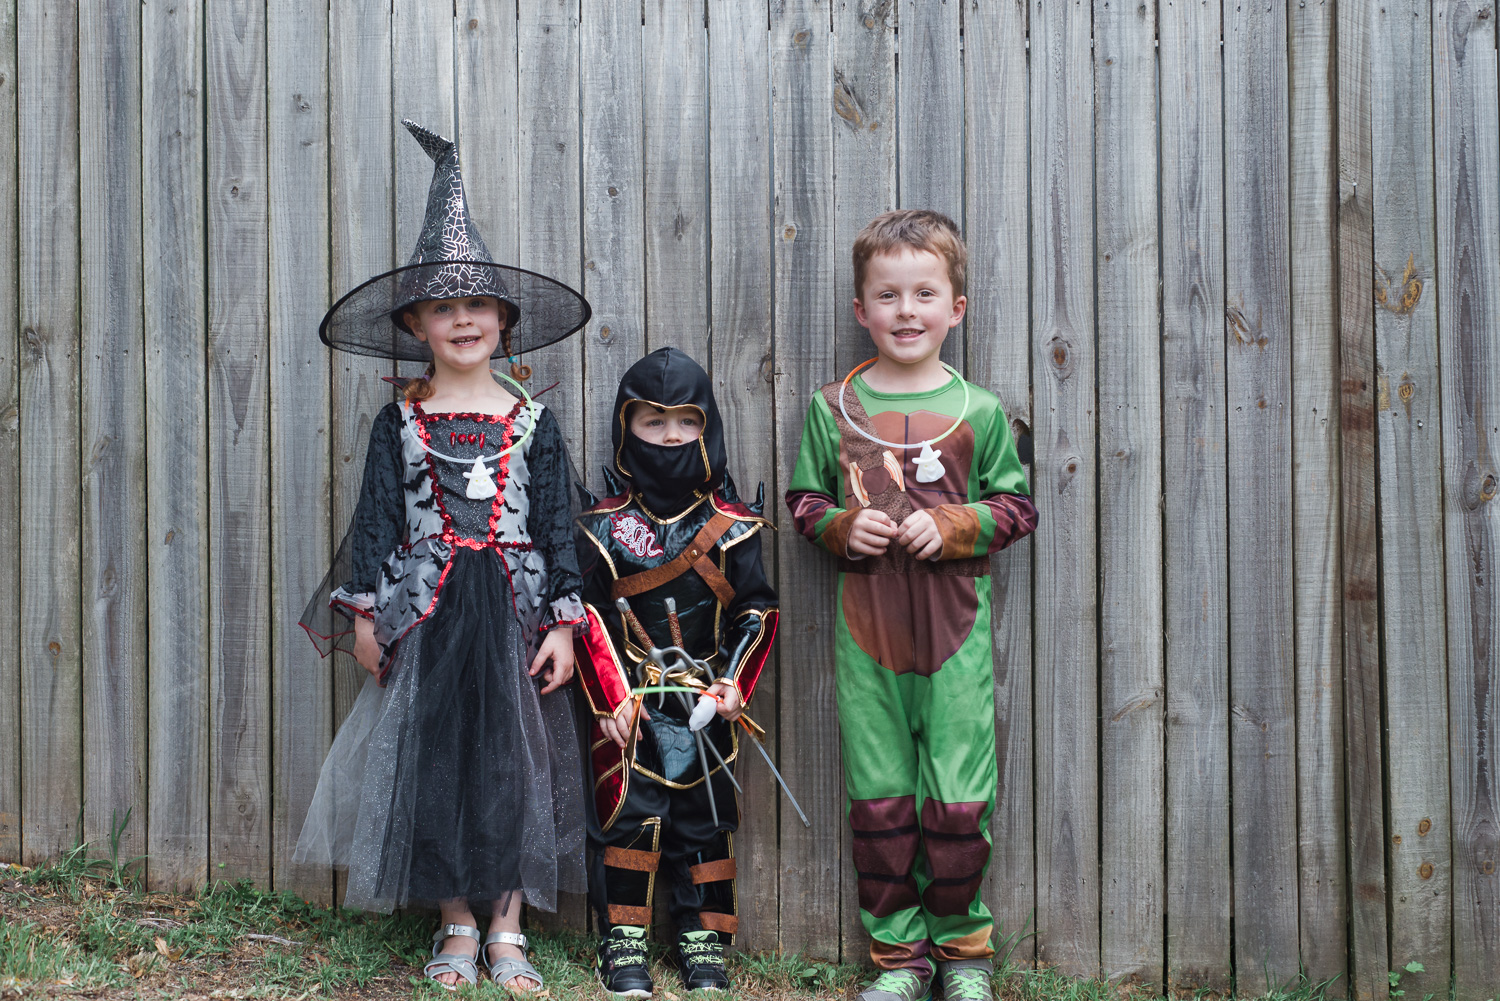 We spent Halloween at a friend's house. A BBQ dinner and then trick or treating- the perfect evening!